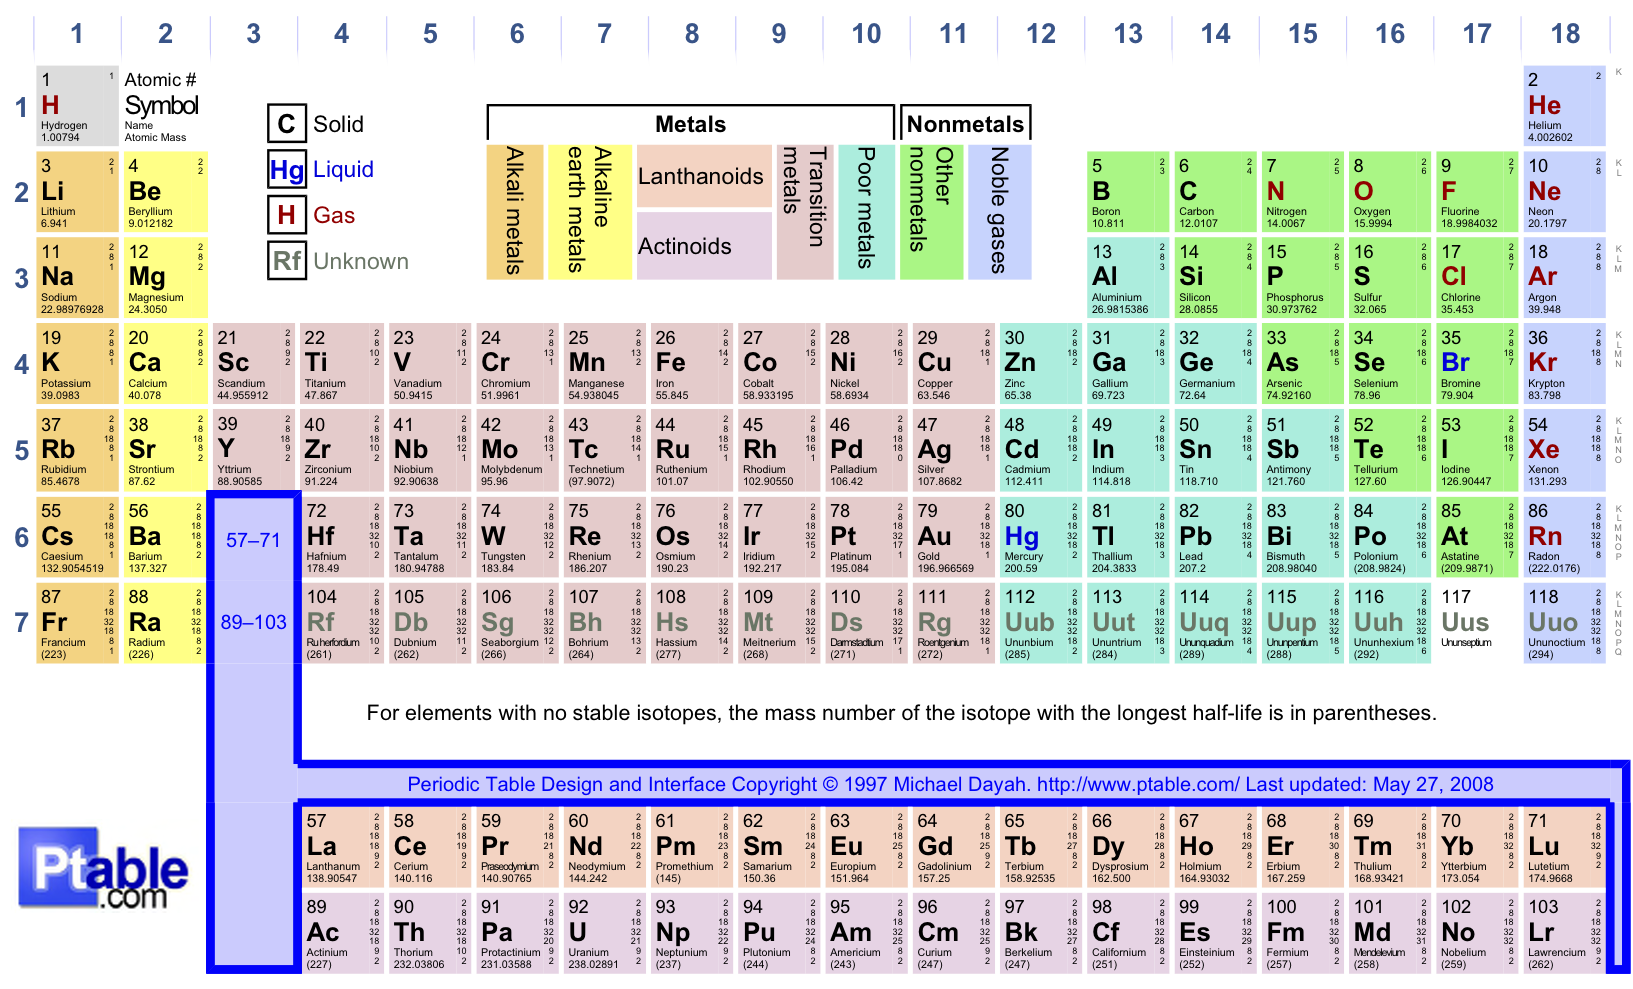 chemical periodicity Start studying chemical periodicity learn vocabulary, terms, and more with flashcards, games, and other study tools.